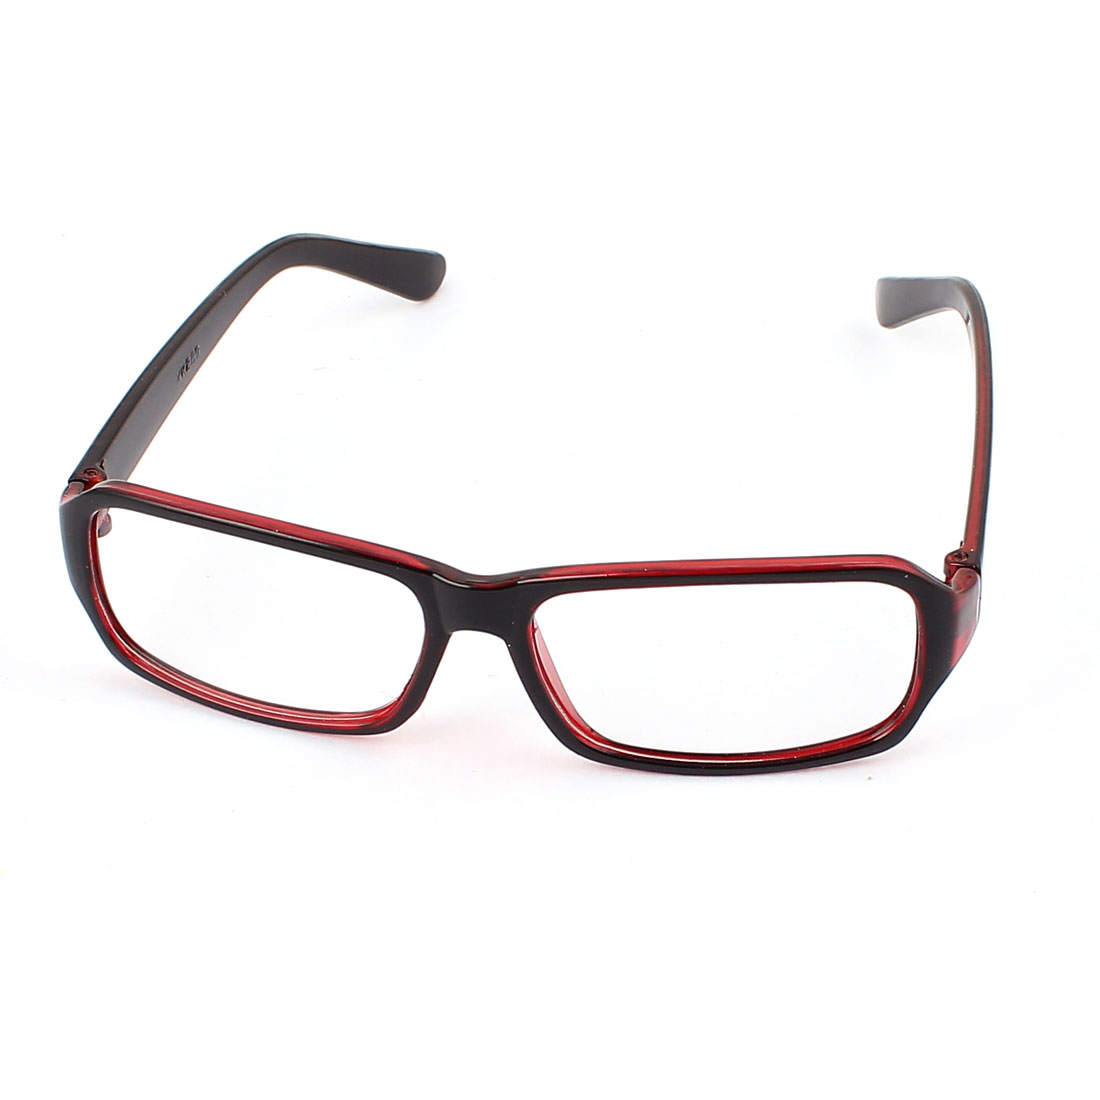 Dark Red Plastic Rectangular Frame Plain Glasses Spectacles